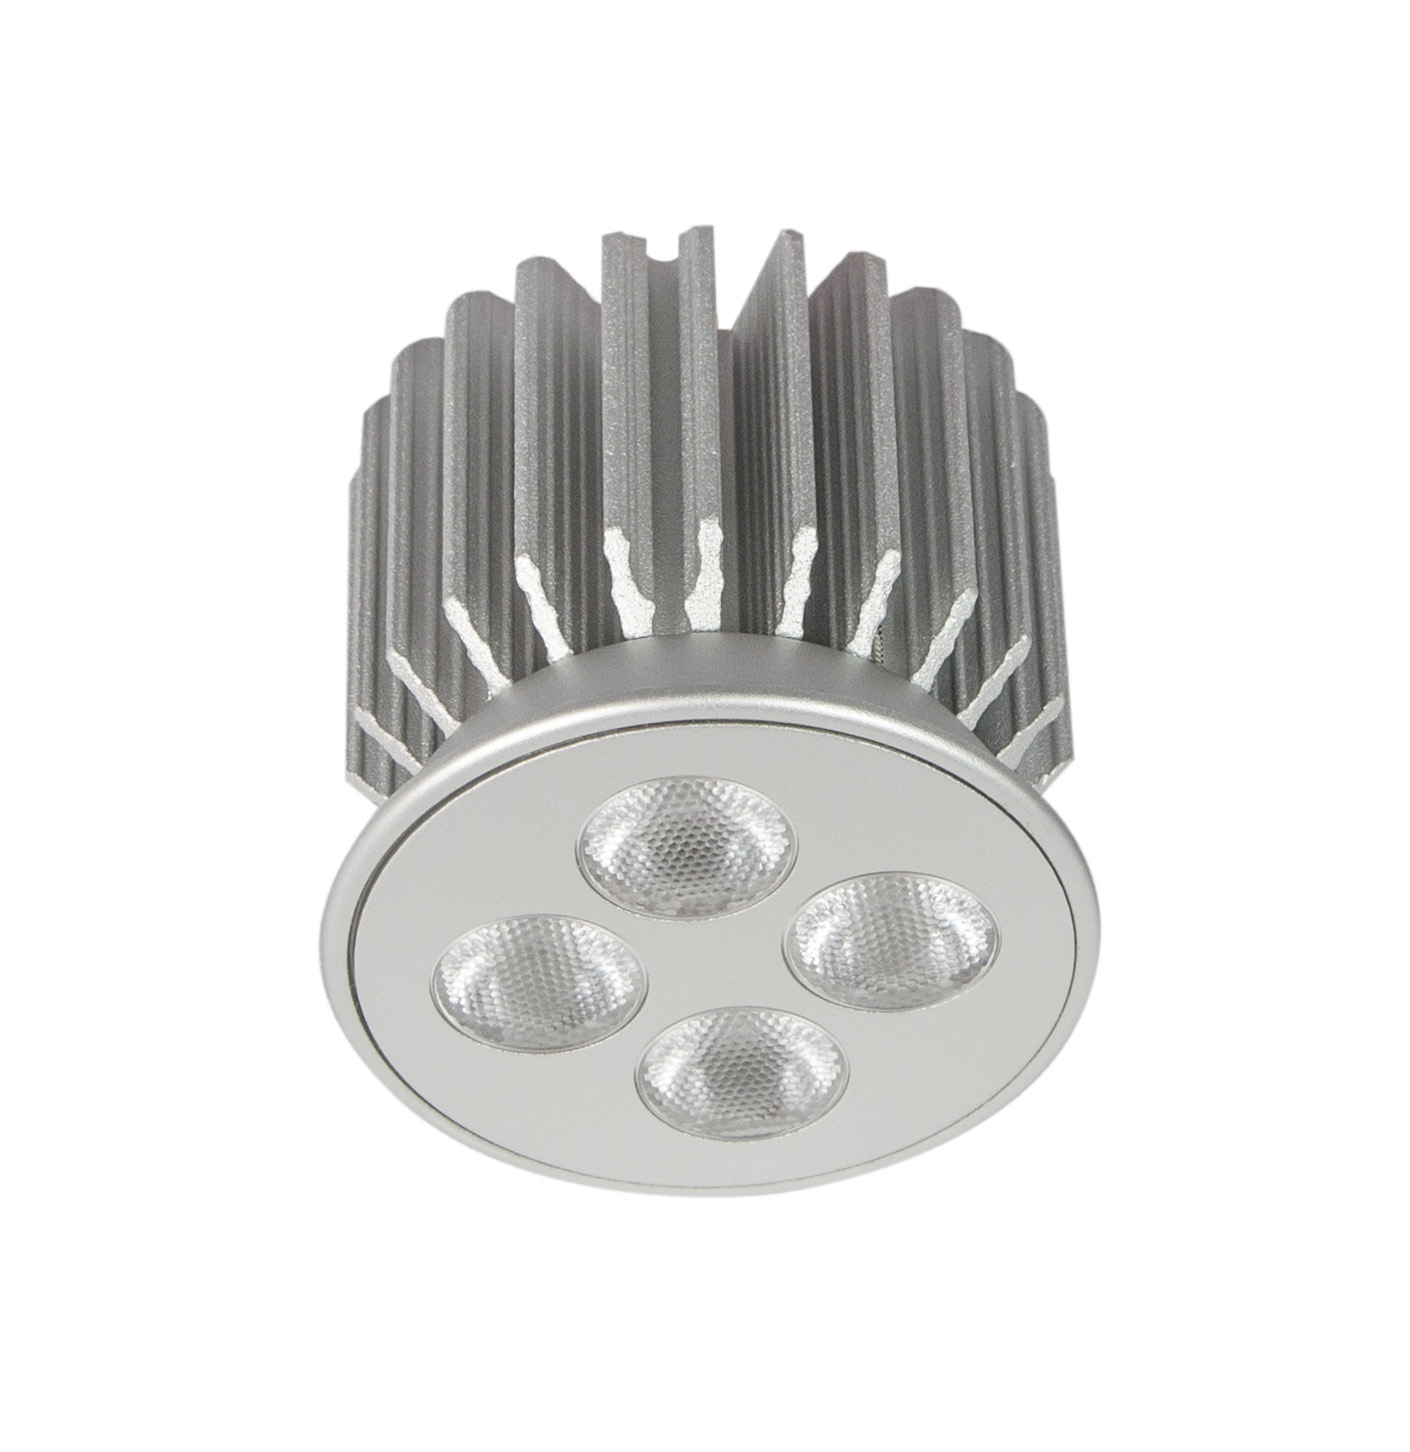 LED MR16 12W DC 700mA CC 60° NW